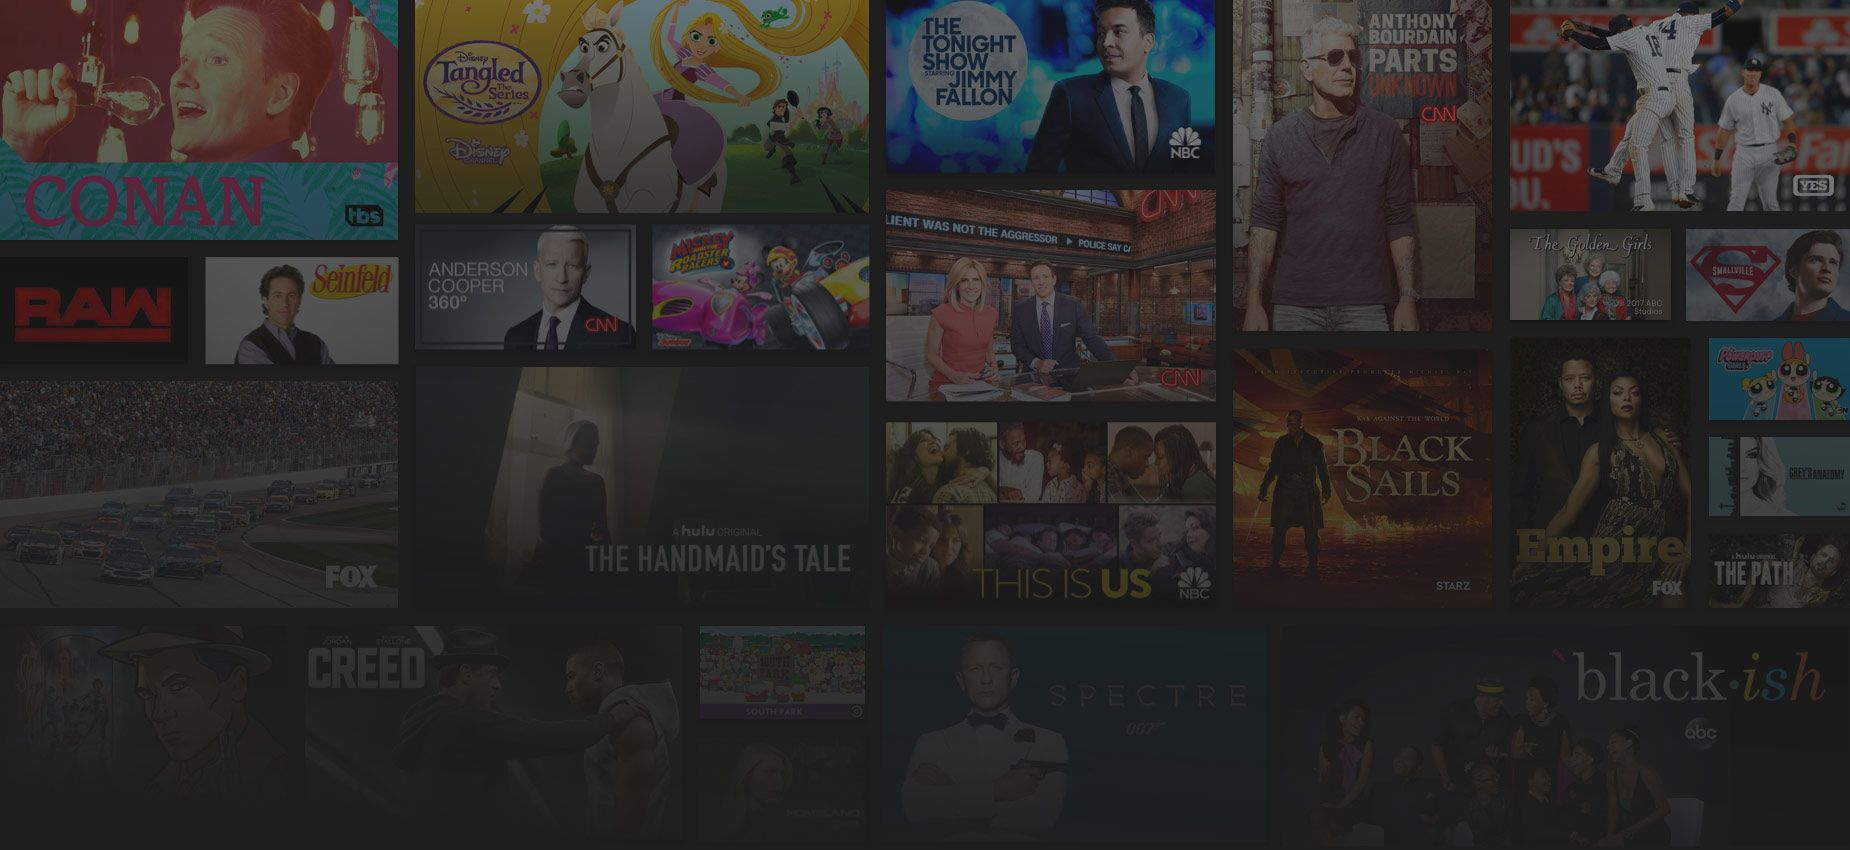 HULU Stream Live TV shows, news and sports online. With